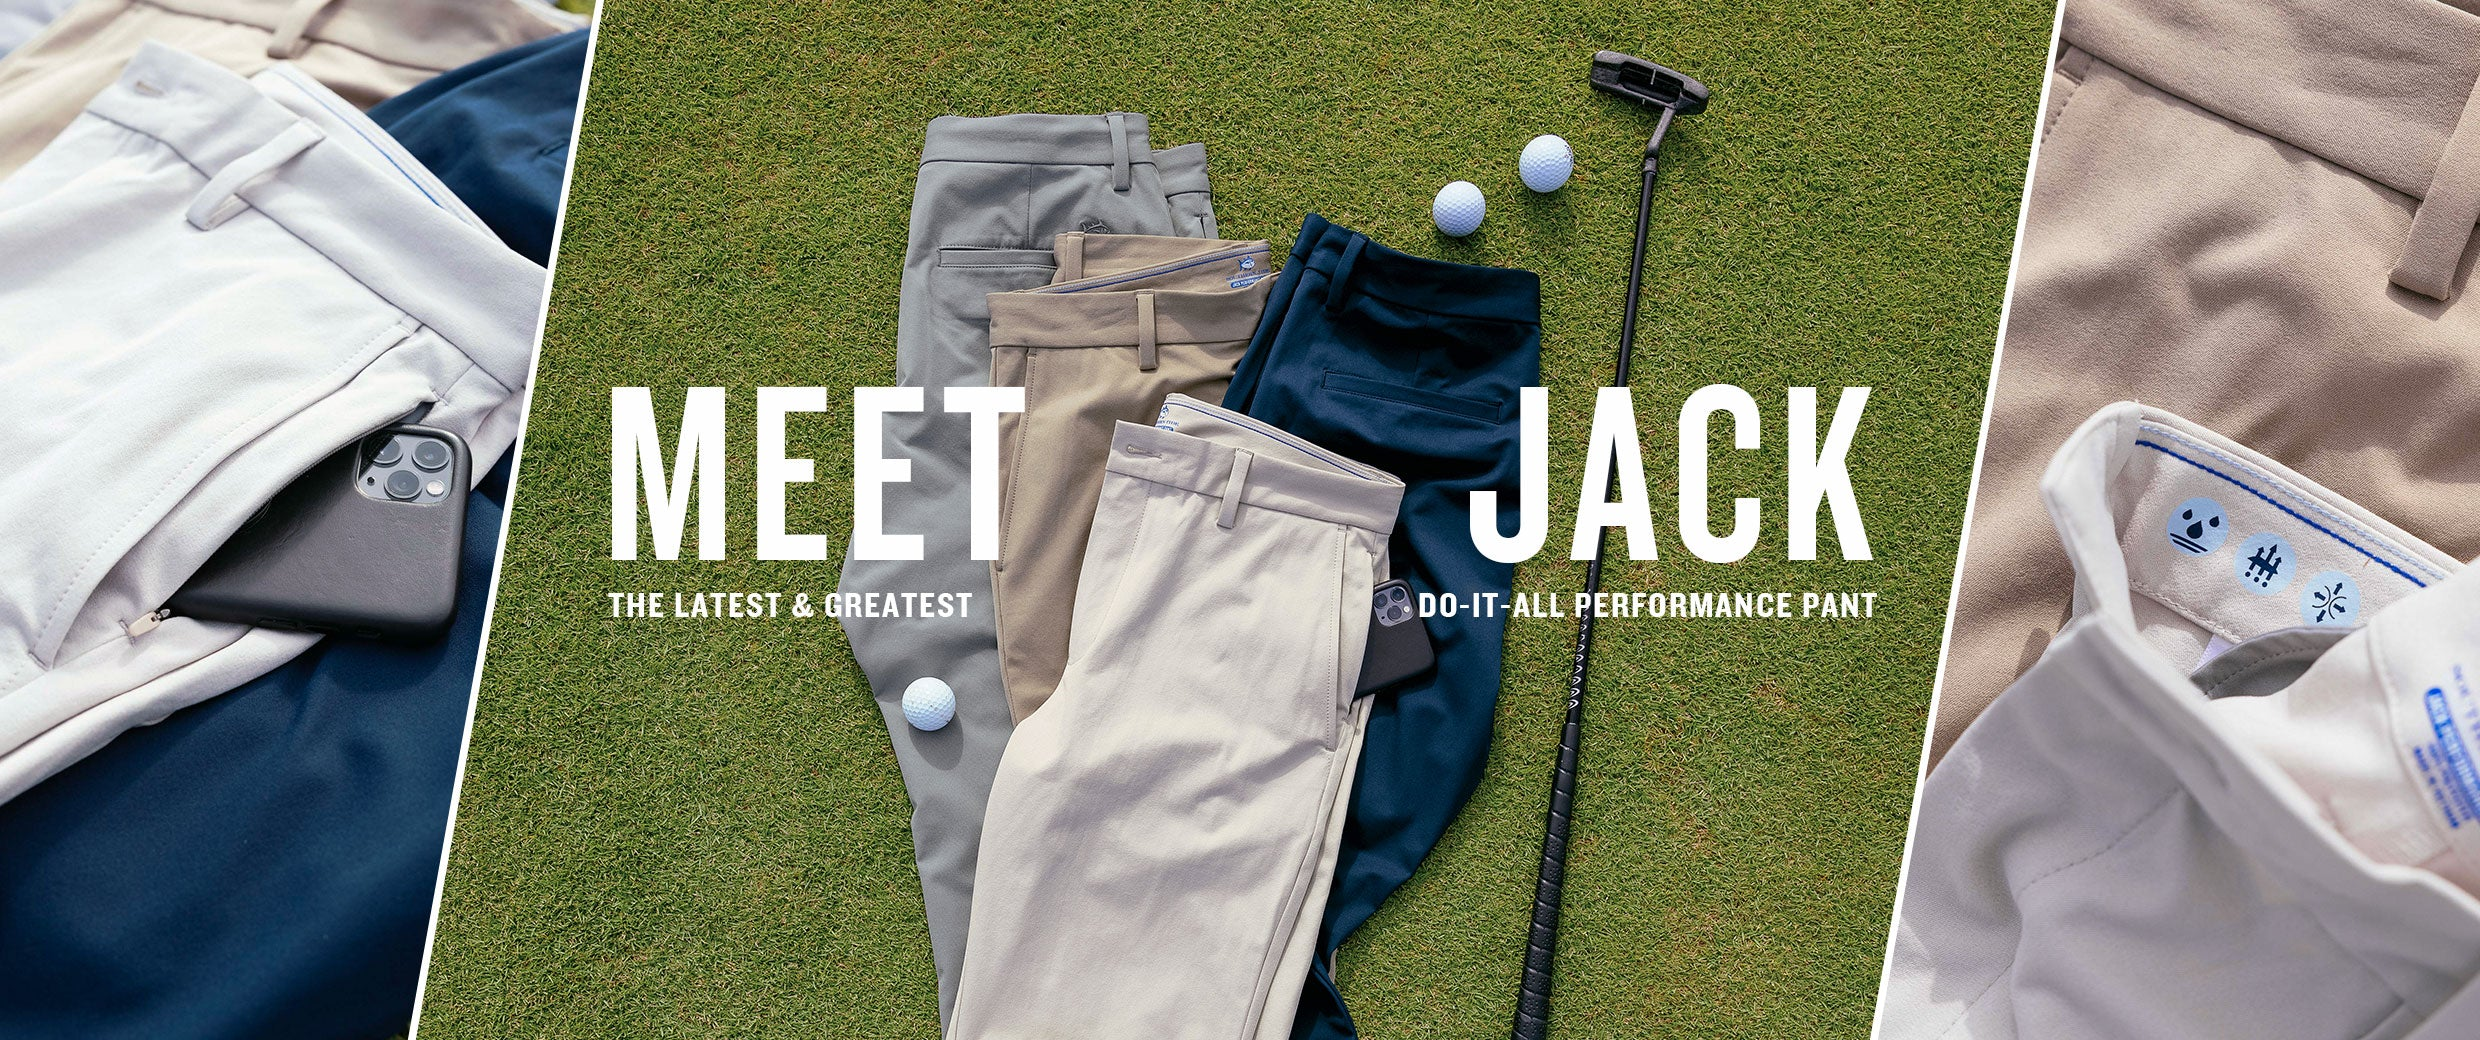 The New Jack Performance Pants